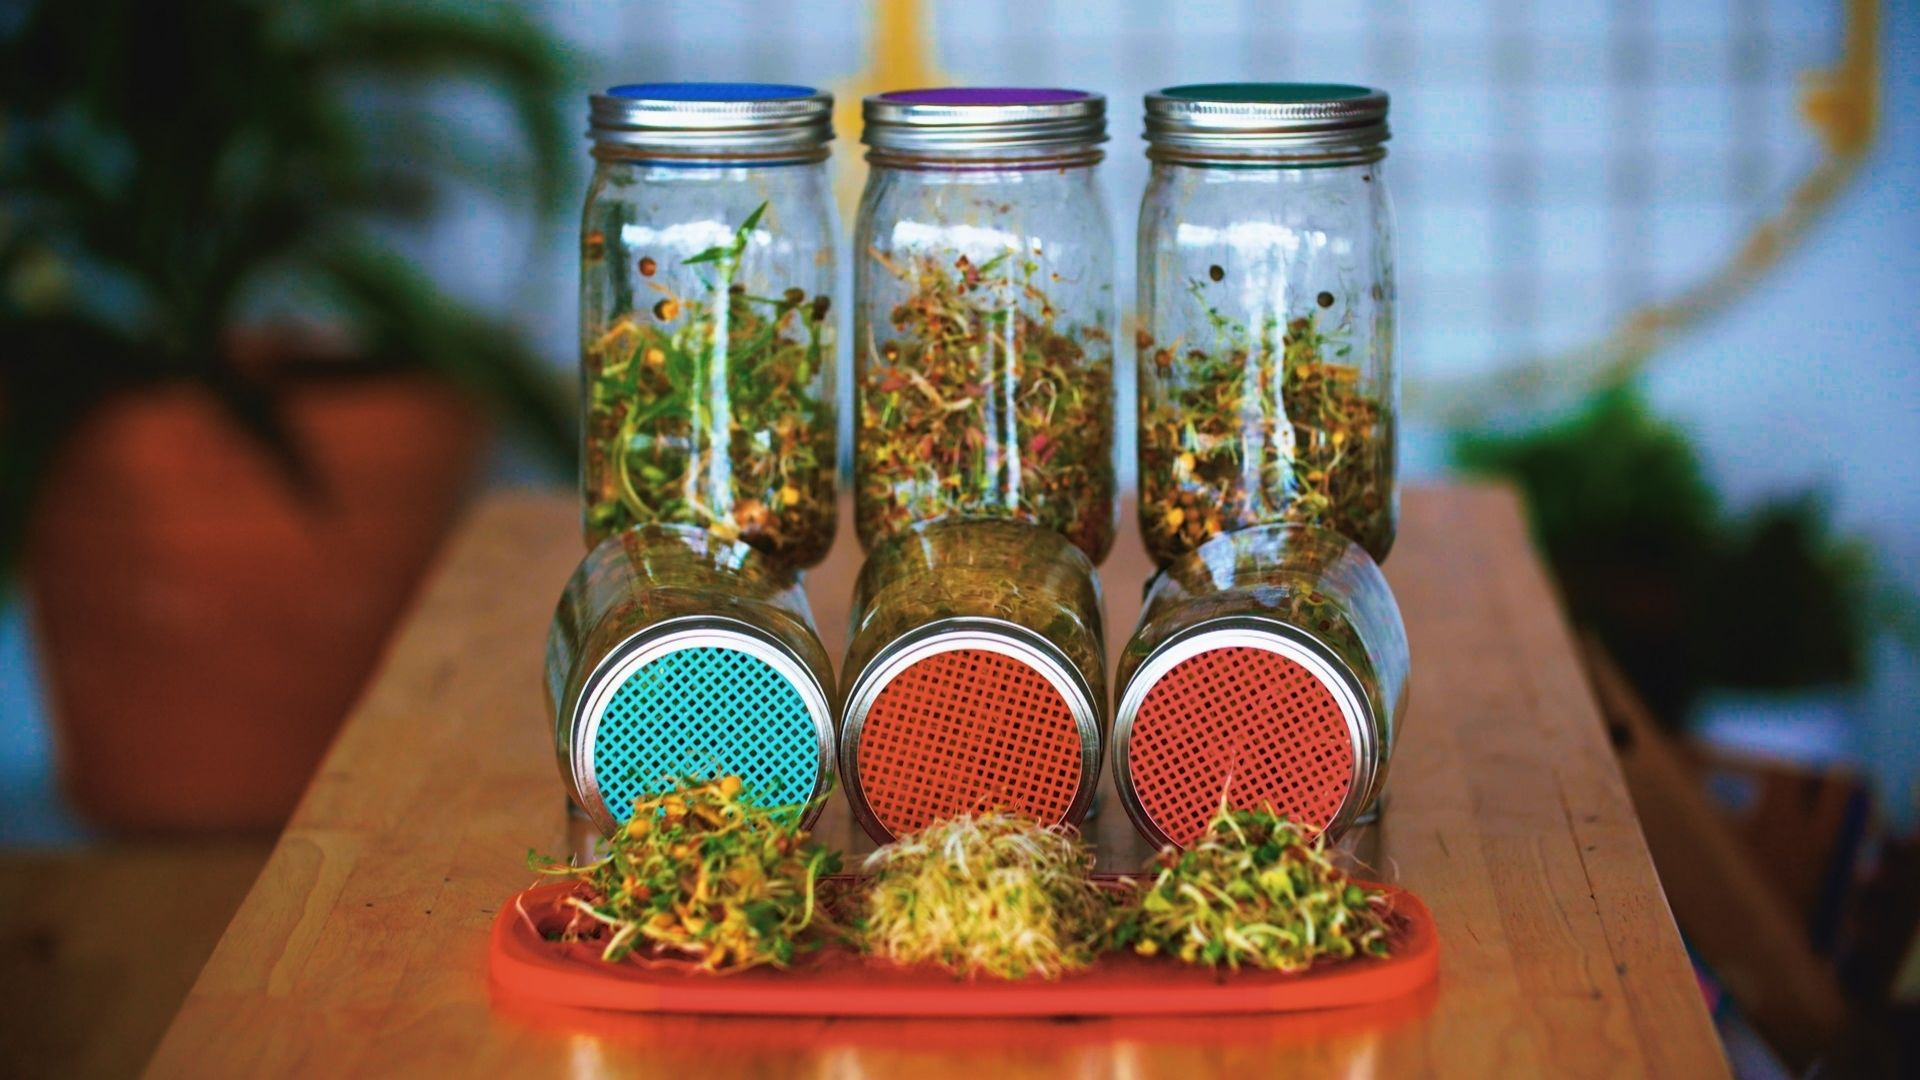 Sprout seeds in a jar in just a few easy steps. Growing